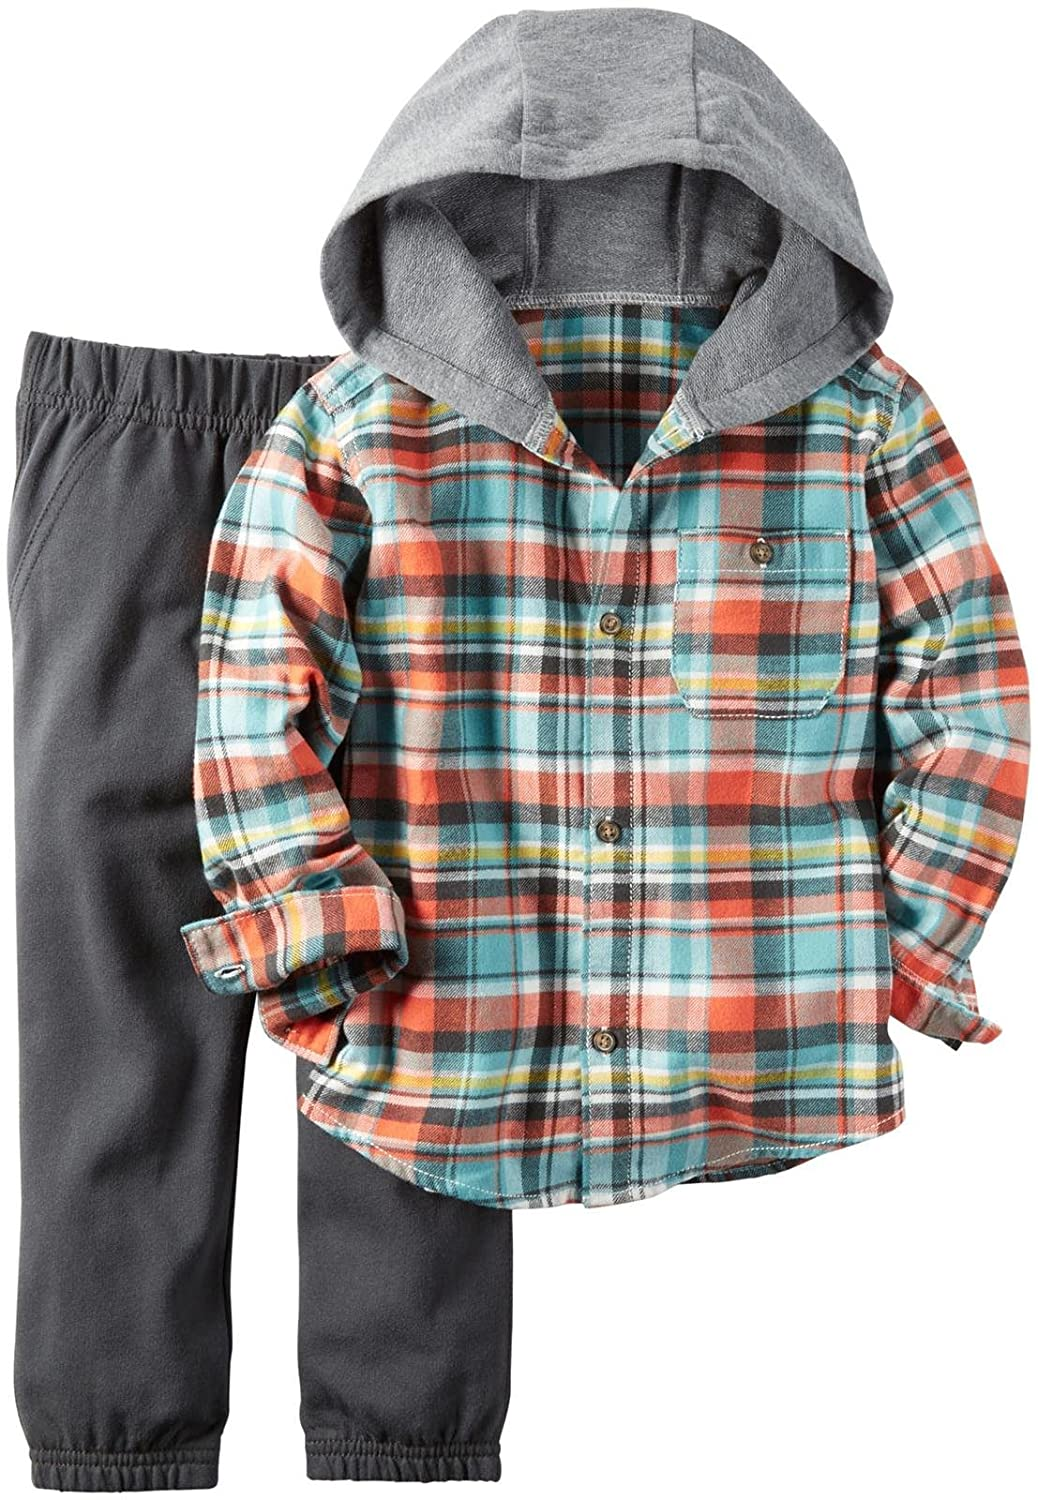 Carter's Boys 2 Pc Playwear Sets 249g261 Plaid 4T Carters 249G261-Plaid-4T